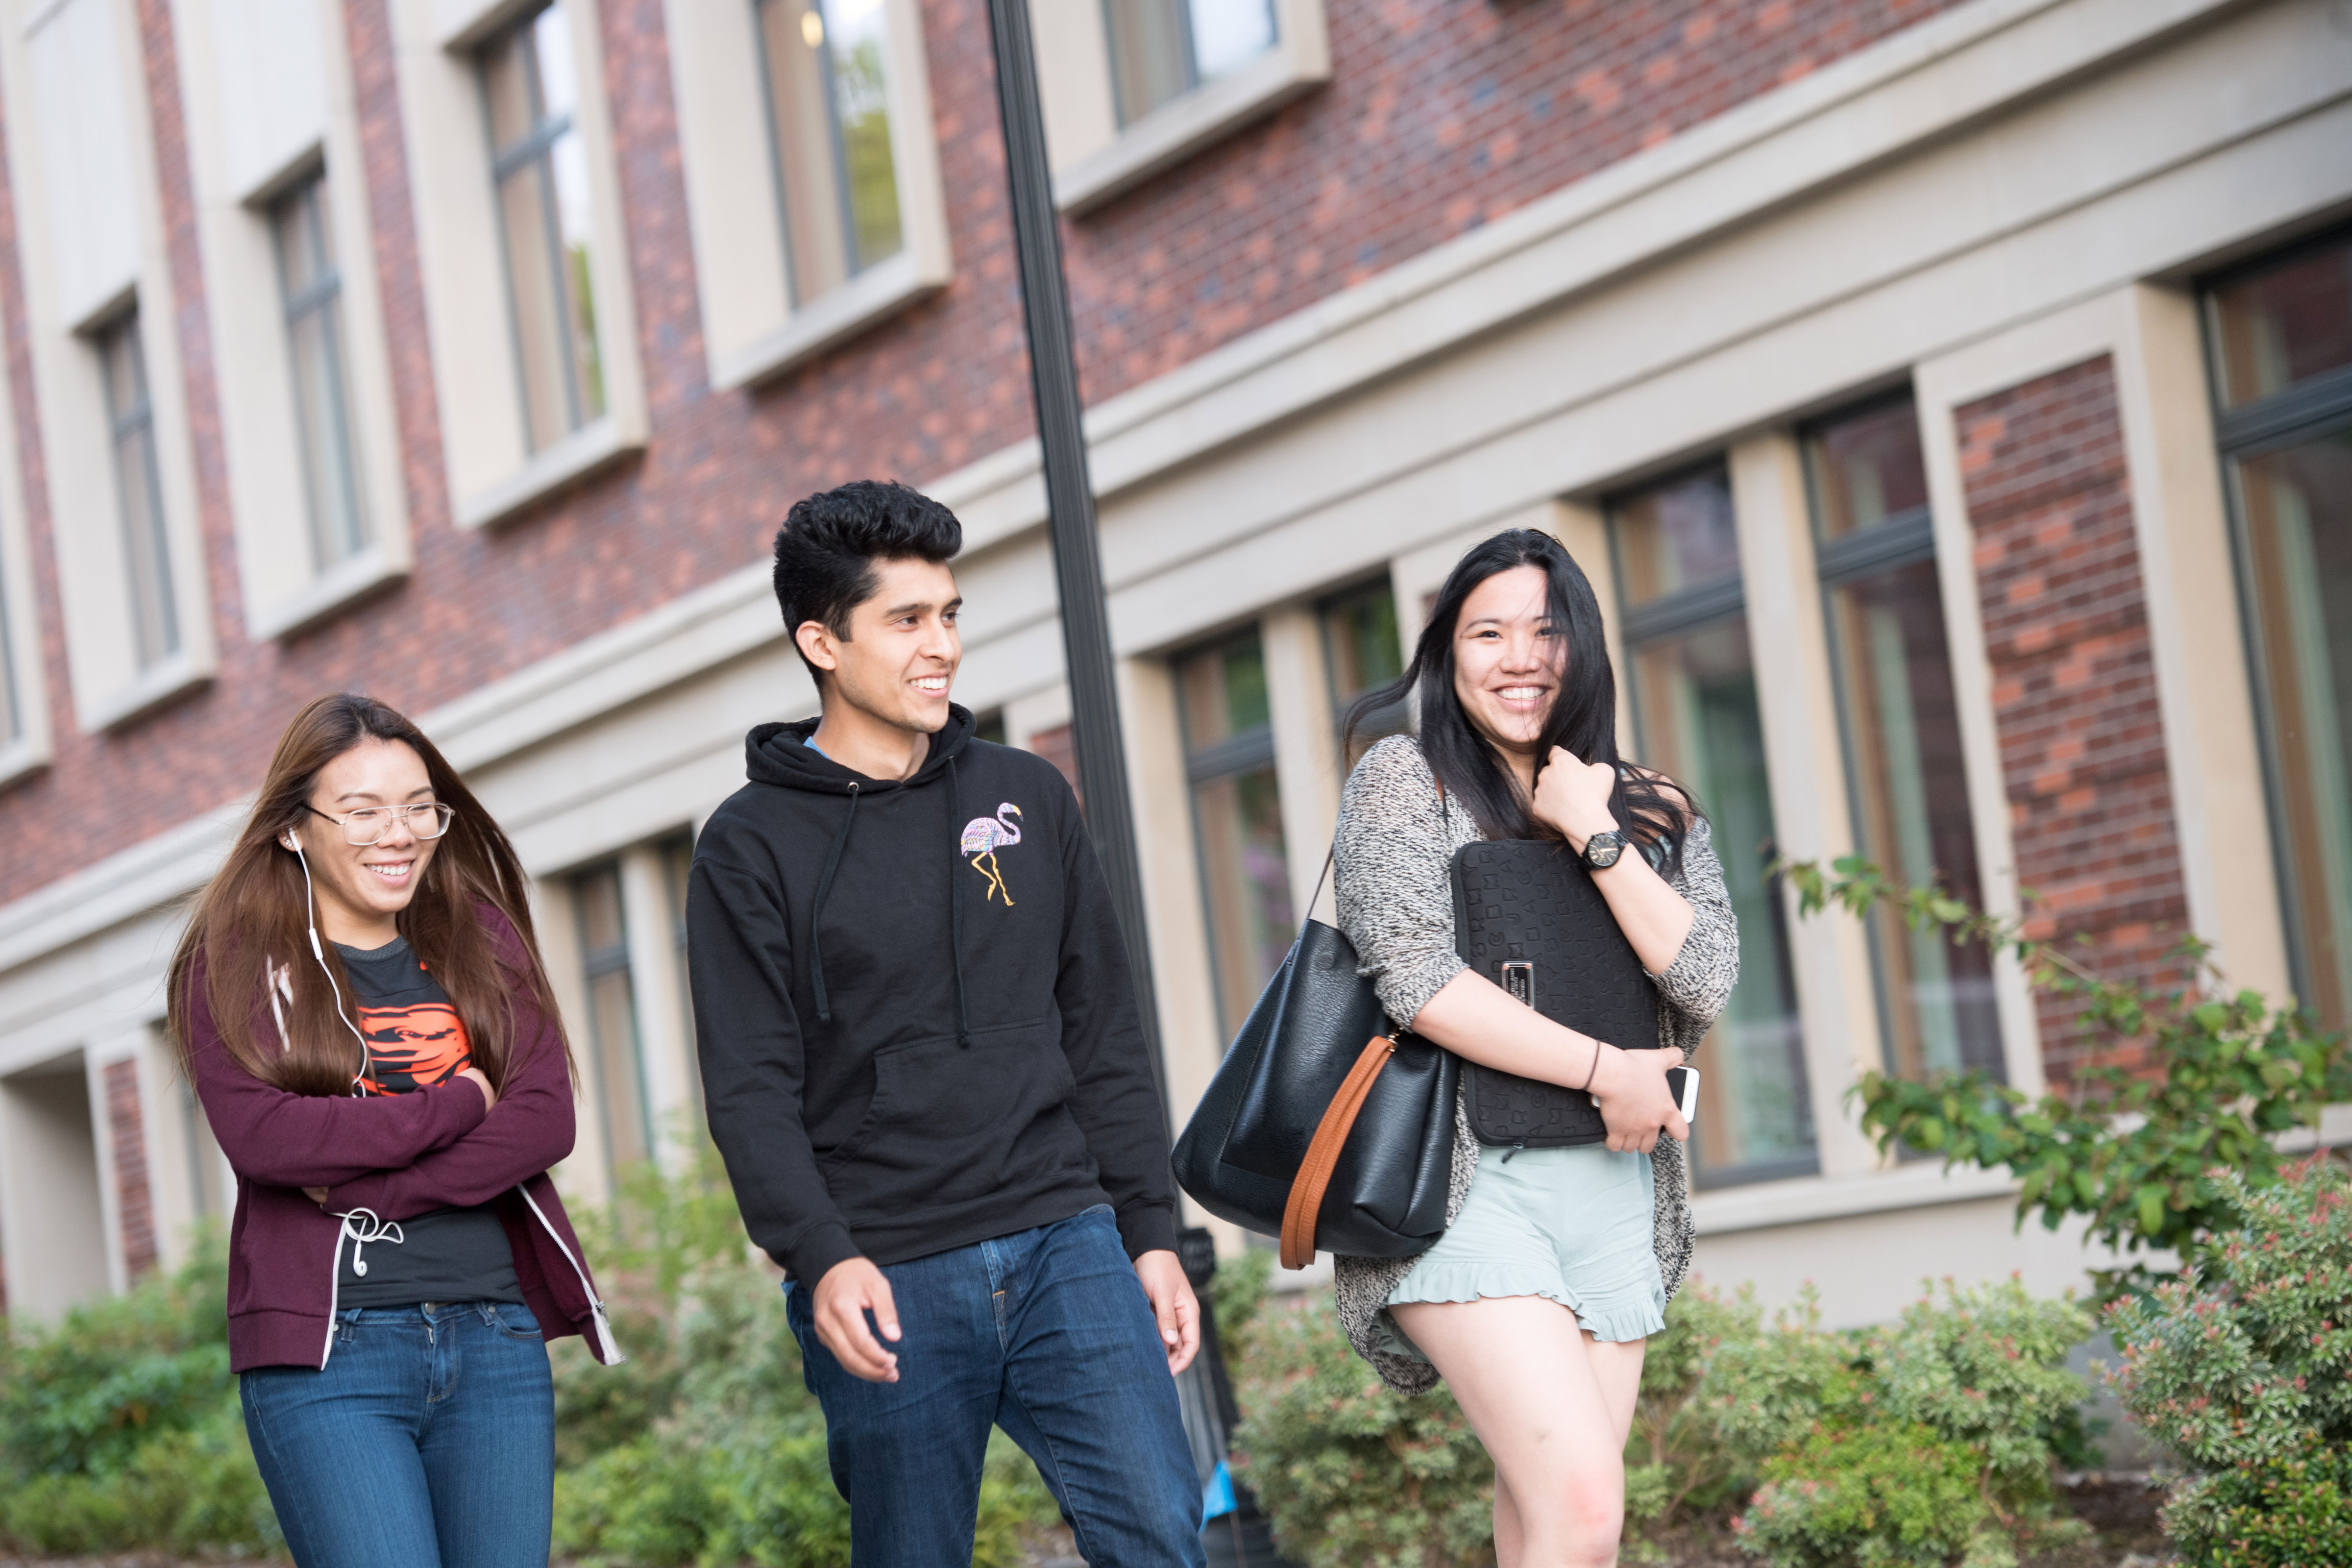 Students walk past the Student Experience Center.